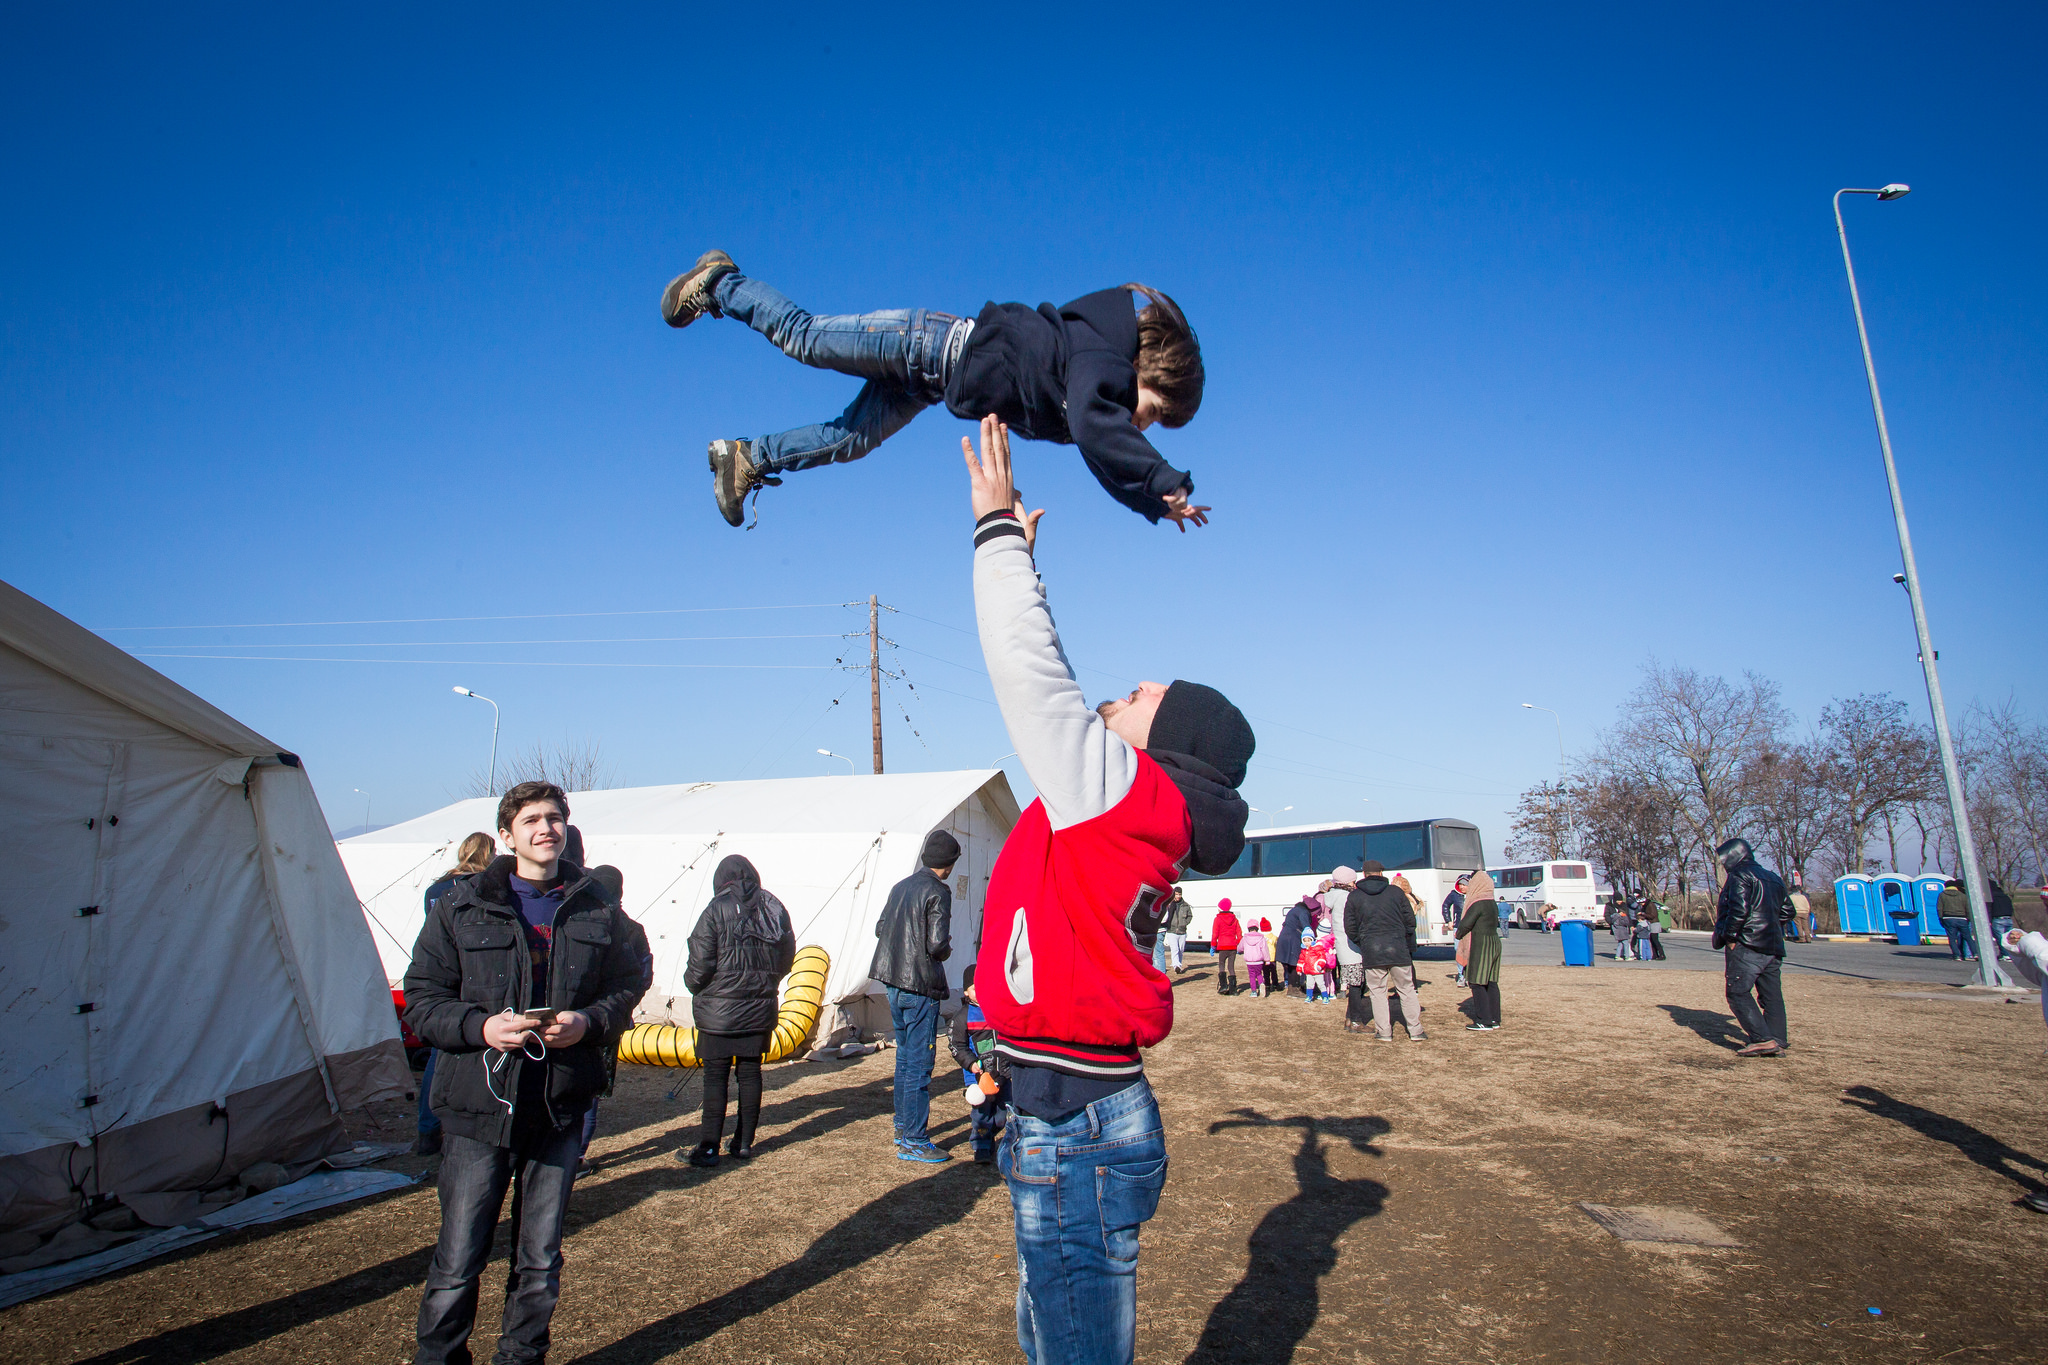 Refugees play at a camp along the Greece-Macedonia border..  (Photo by Natalia Tsoukala and Caritas International/Flickr Creative Commons)